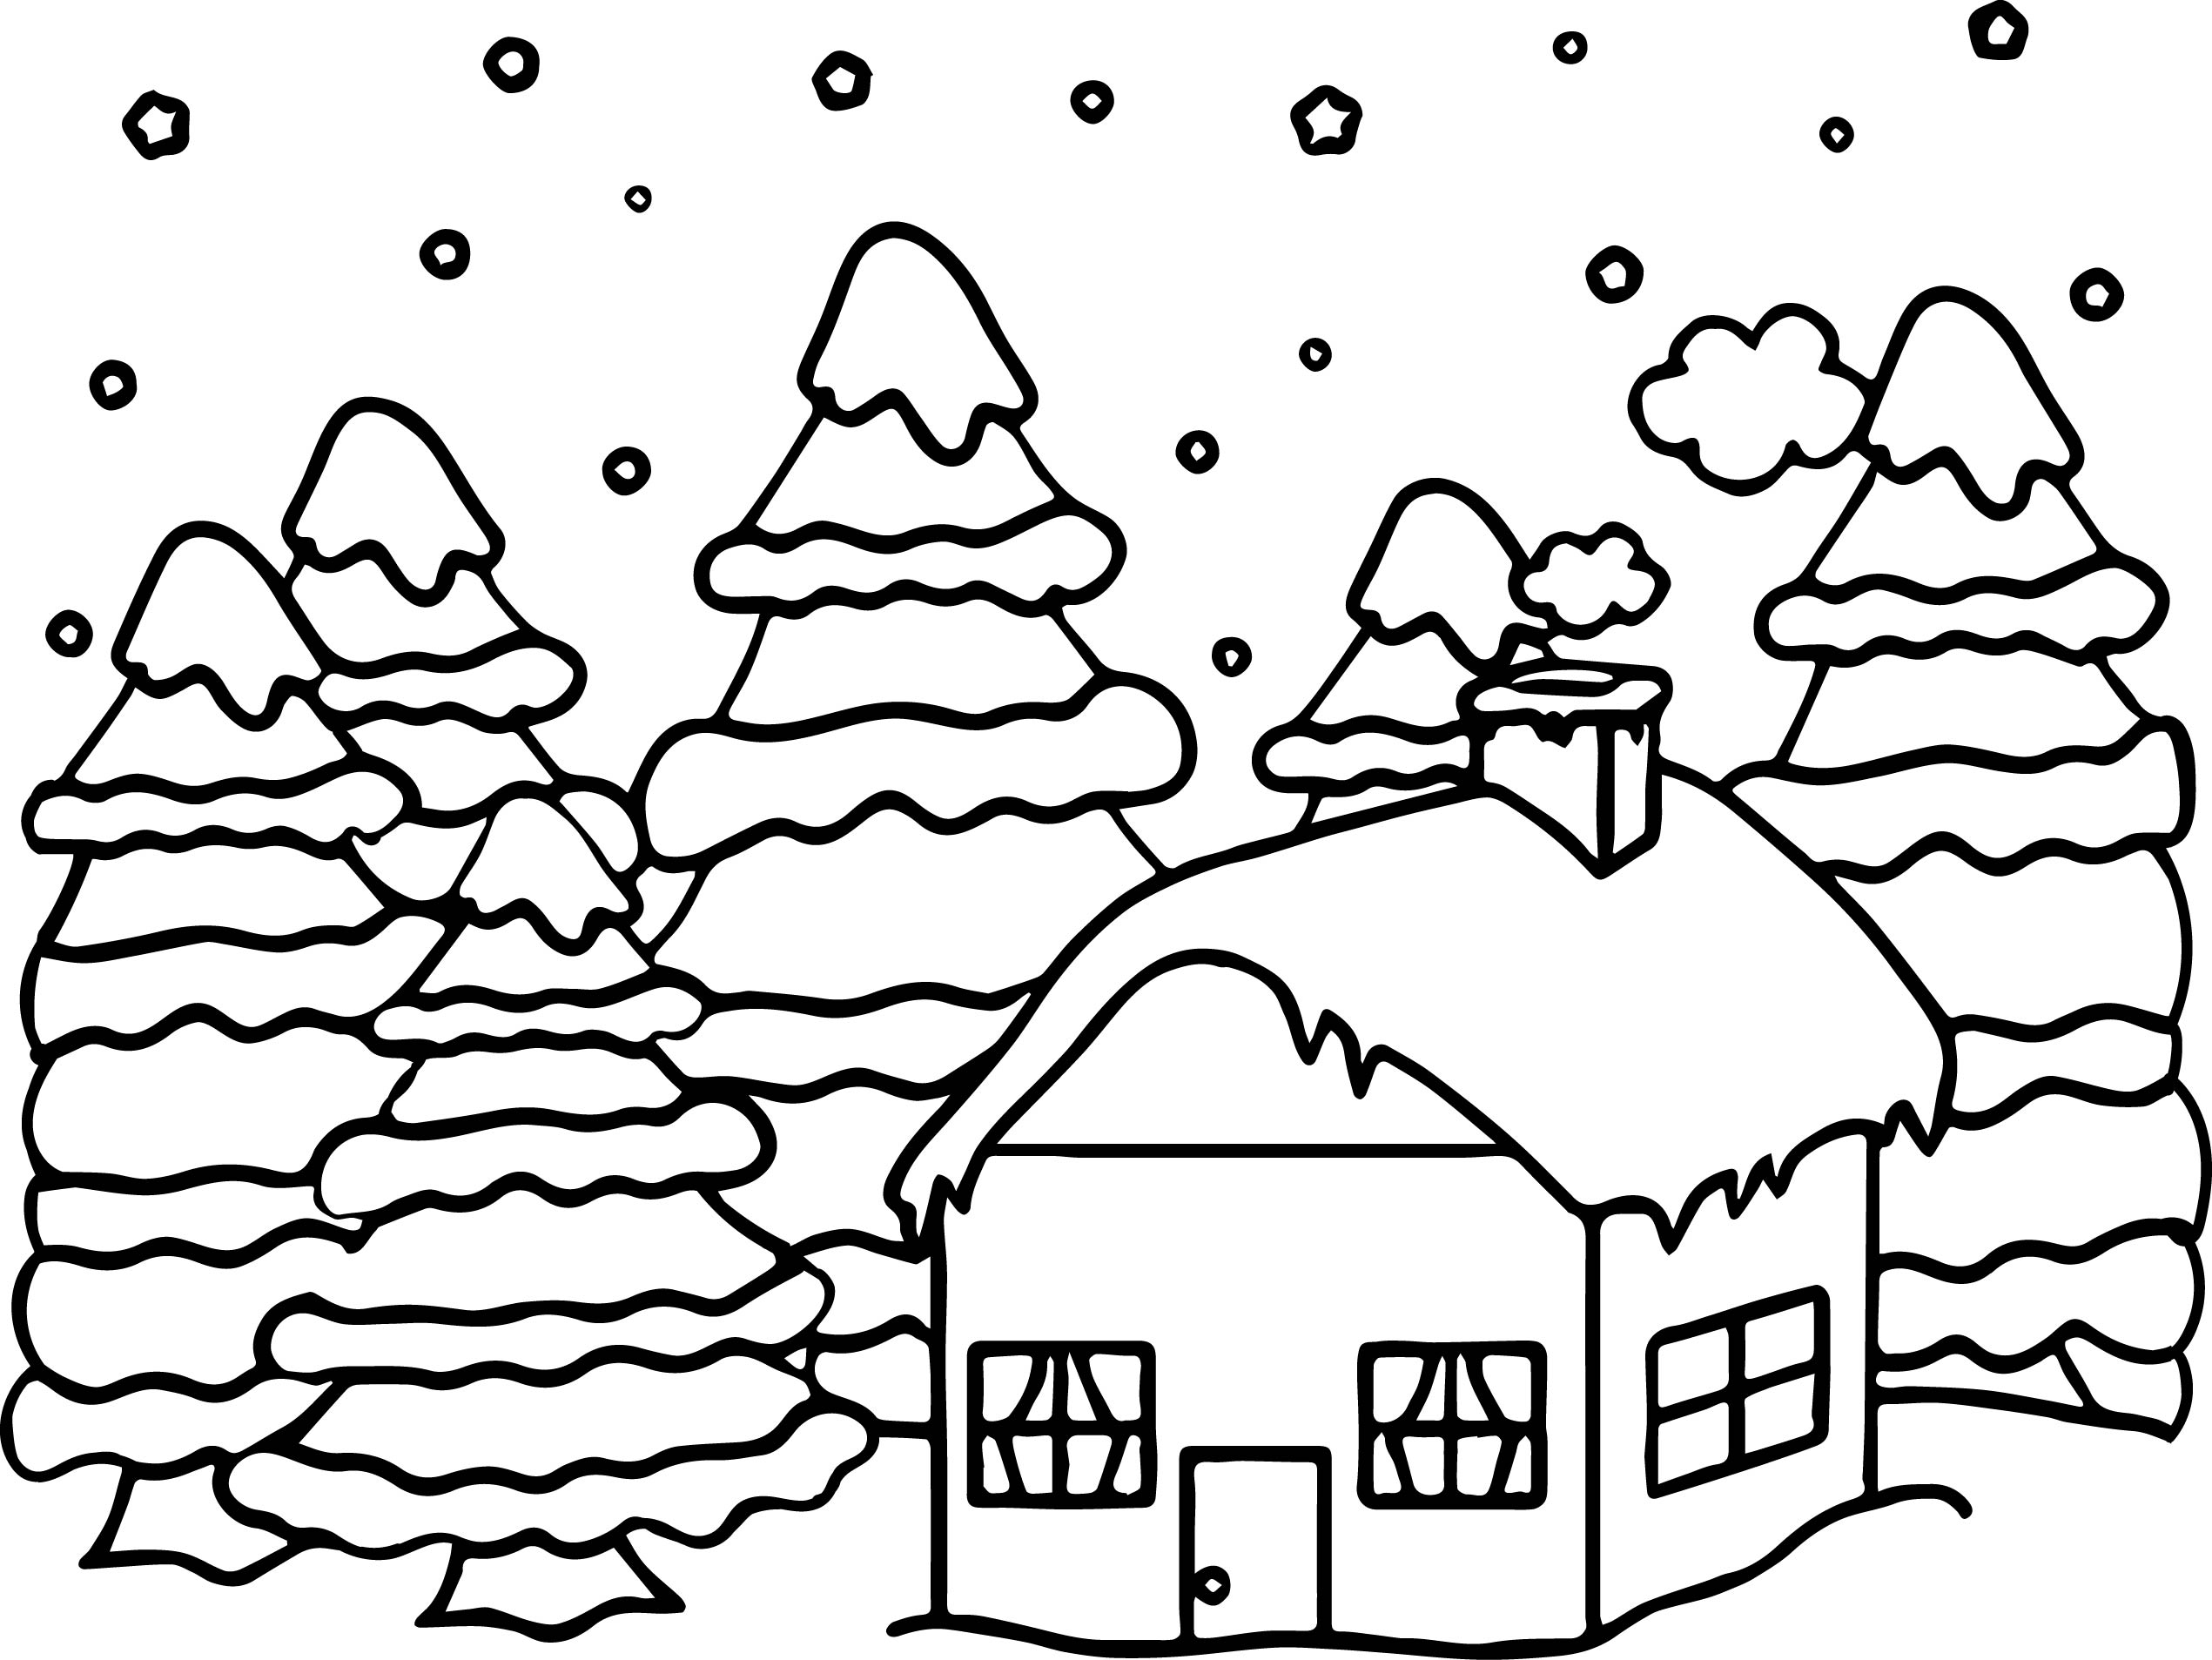 House Or Cabin In The Woods Covered In Snow In The Winter Time Coloring Page